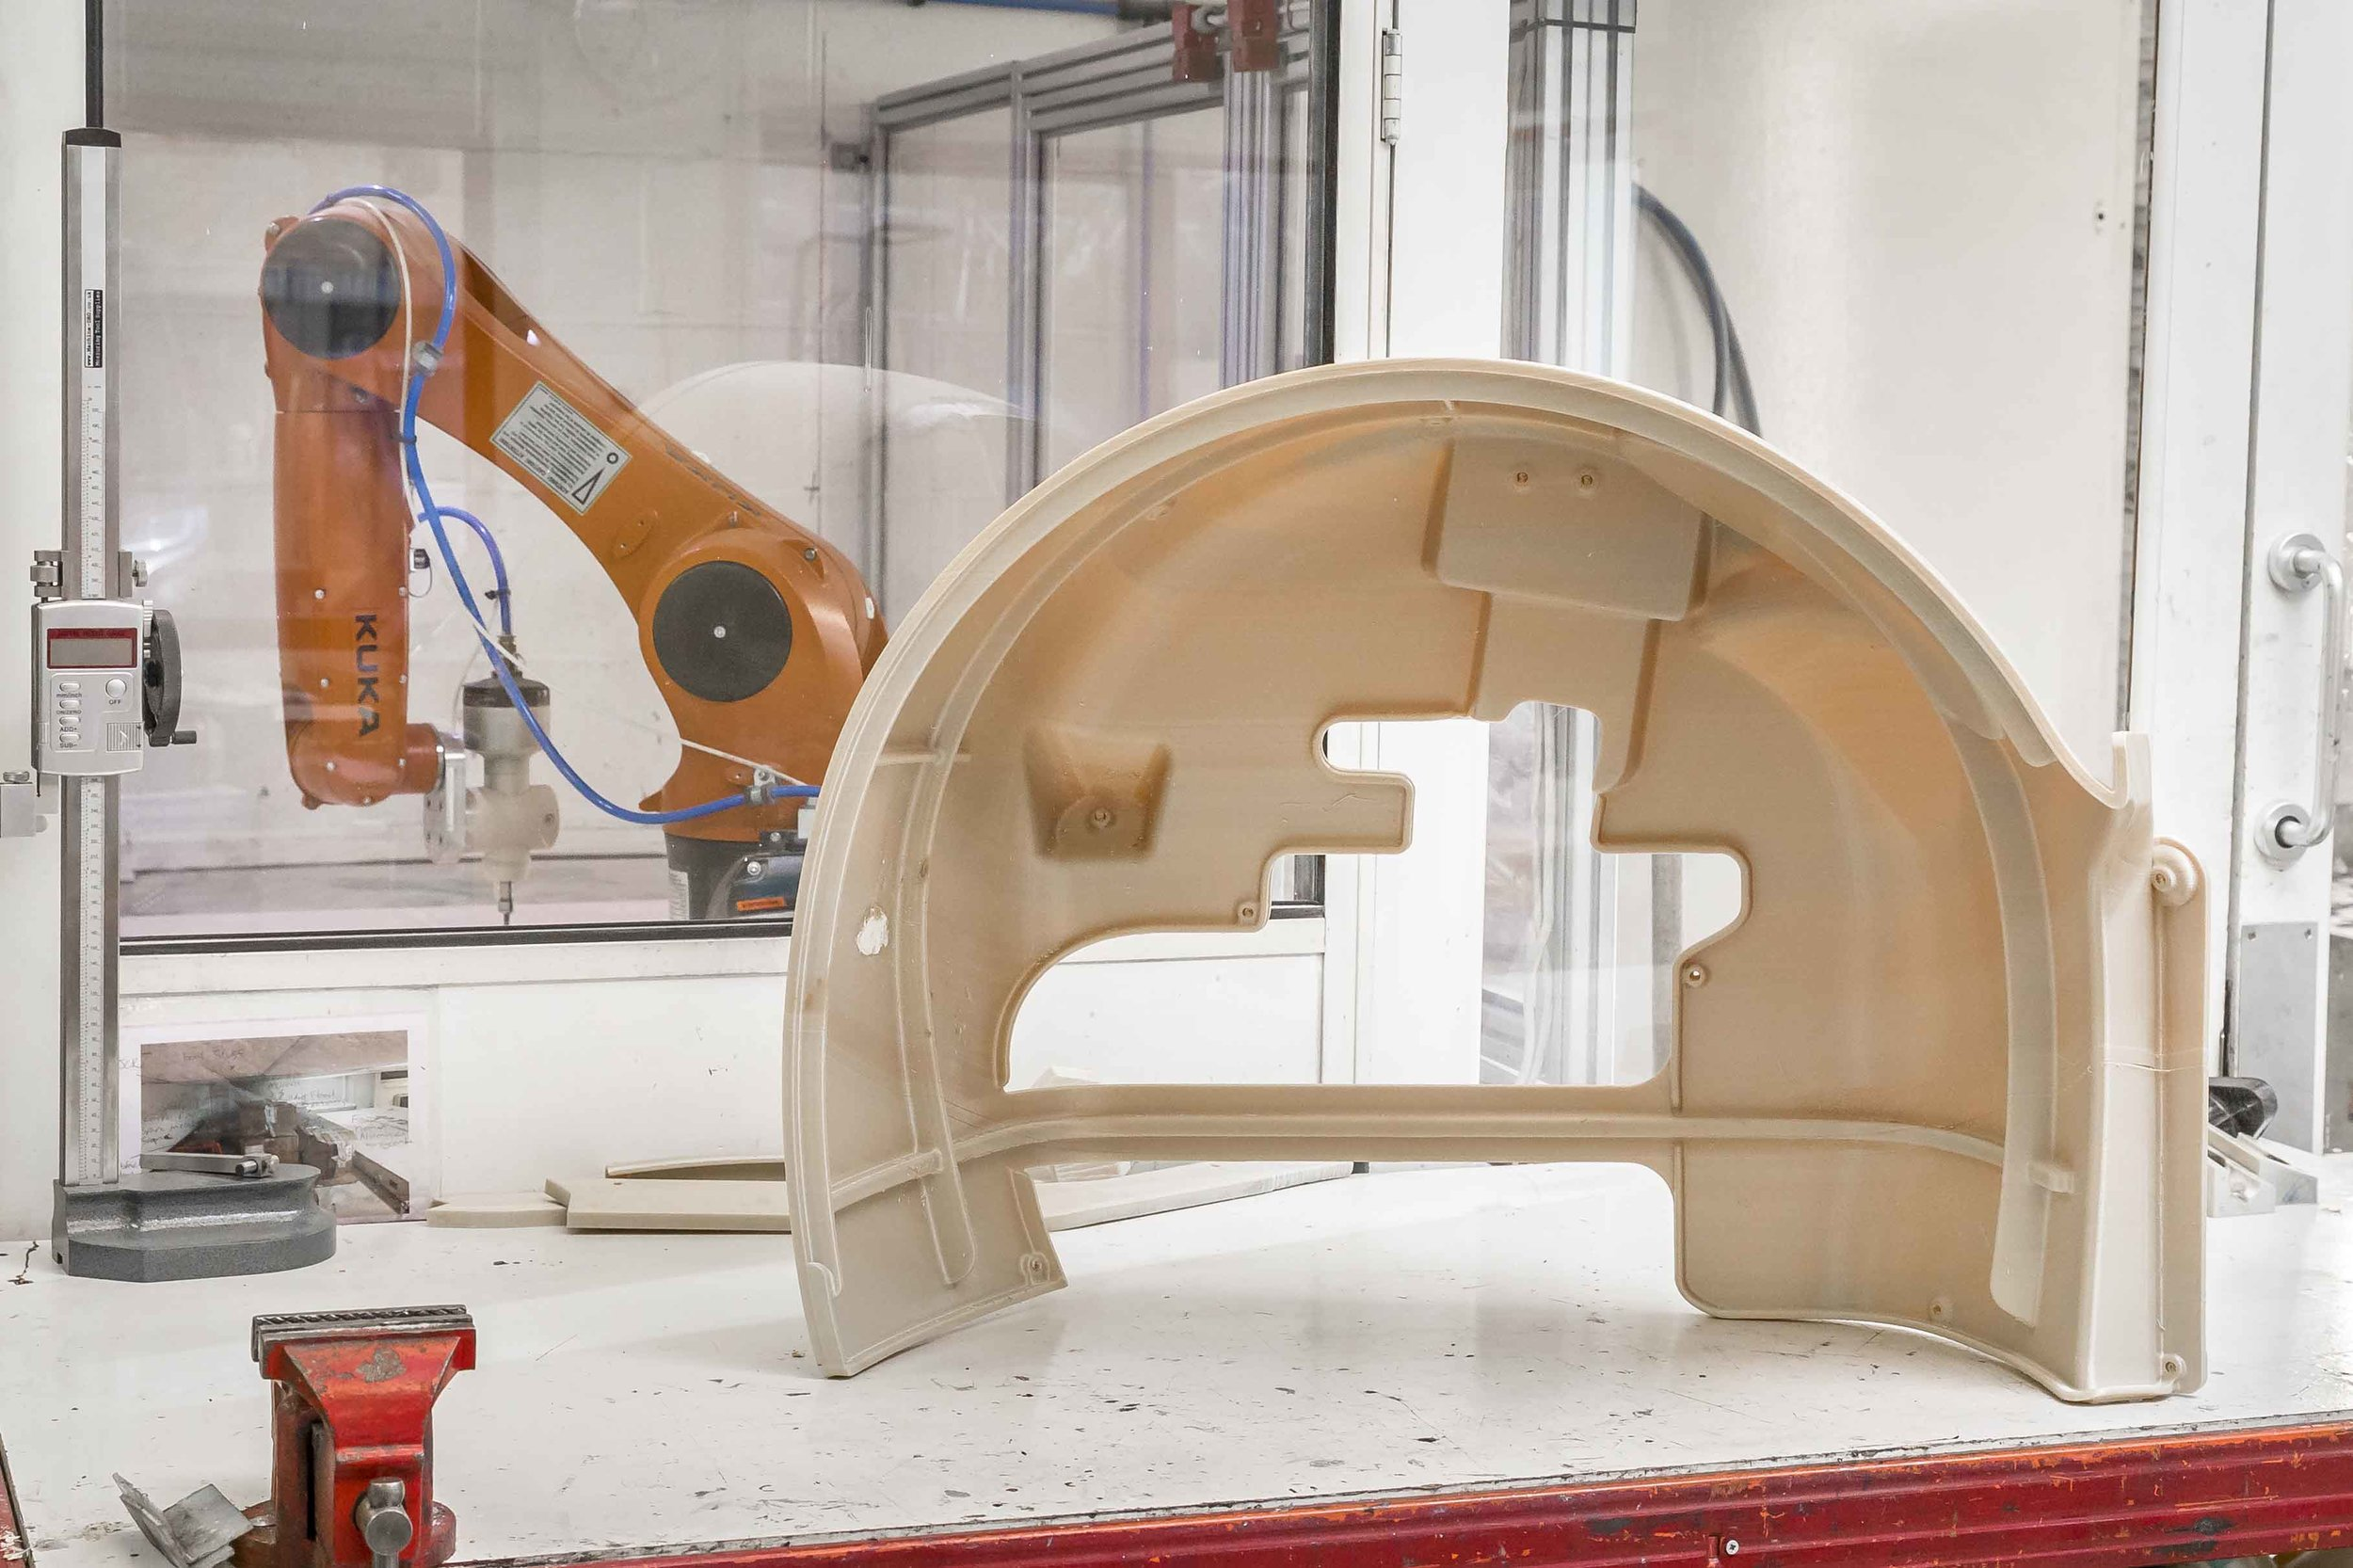 3D printed tooling for composites ULTEM 1010 ULTEM 9085 STRATASYS 3D printing UK 3D printing ULTEM Design Engineering Analysis CFD FEA CATIA Siemens NX Automotive Engineering Motorsport Engineering Aerospace 3D printed parts and tooling Defence vehicle engineering Composites Entry-level Autoclaves